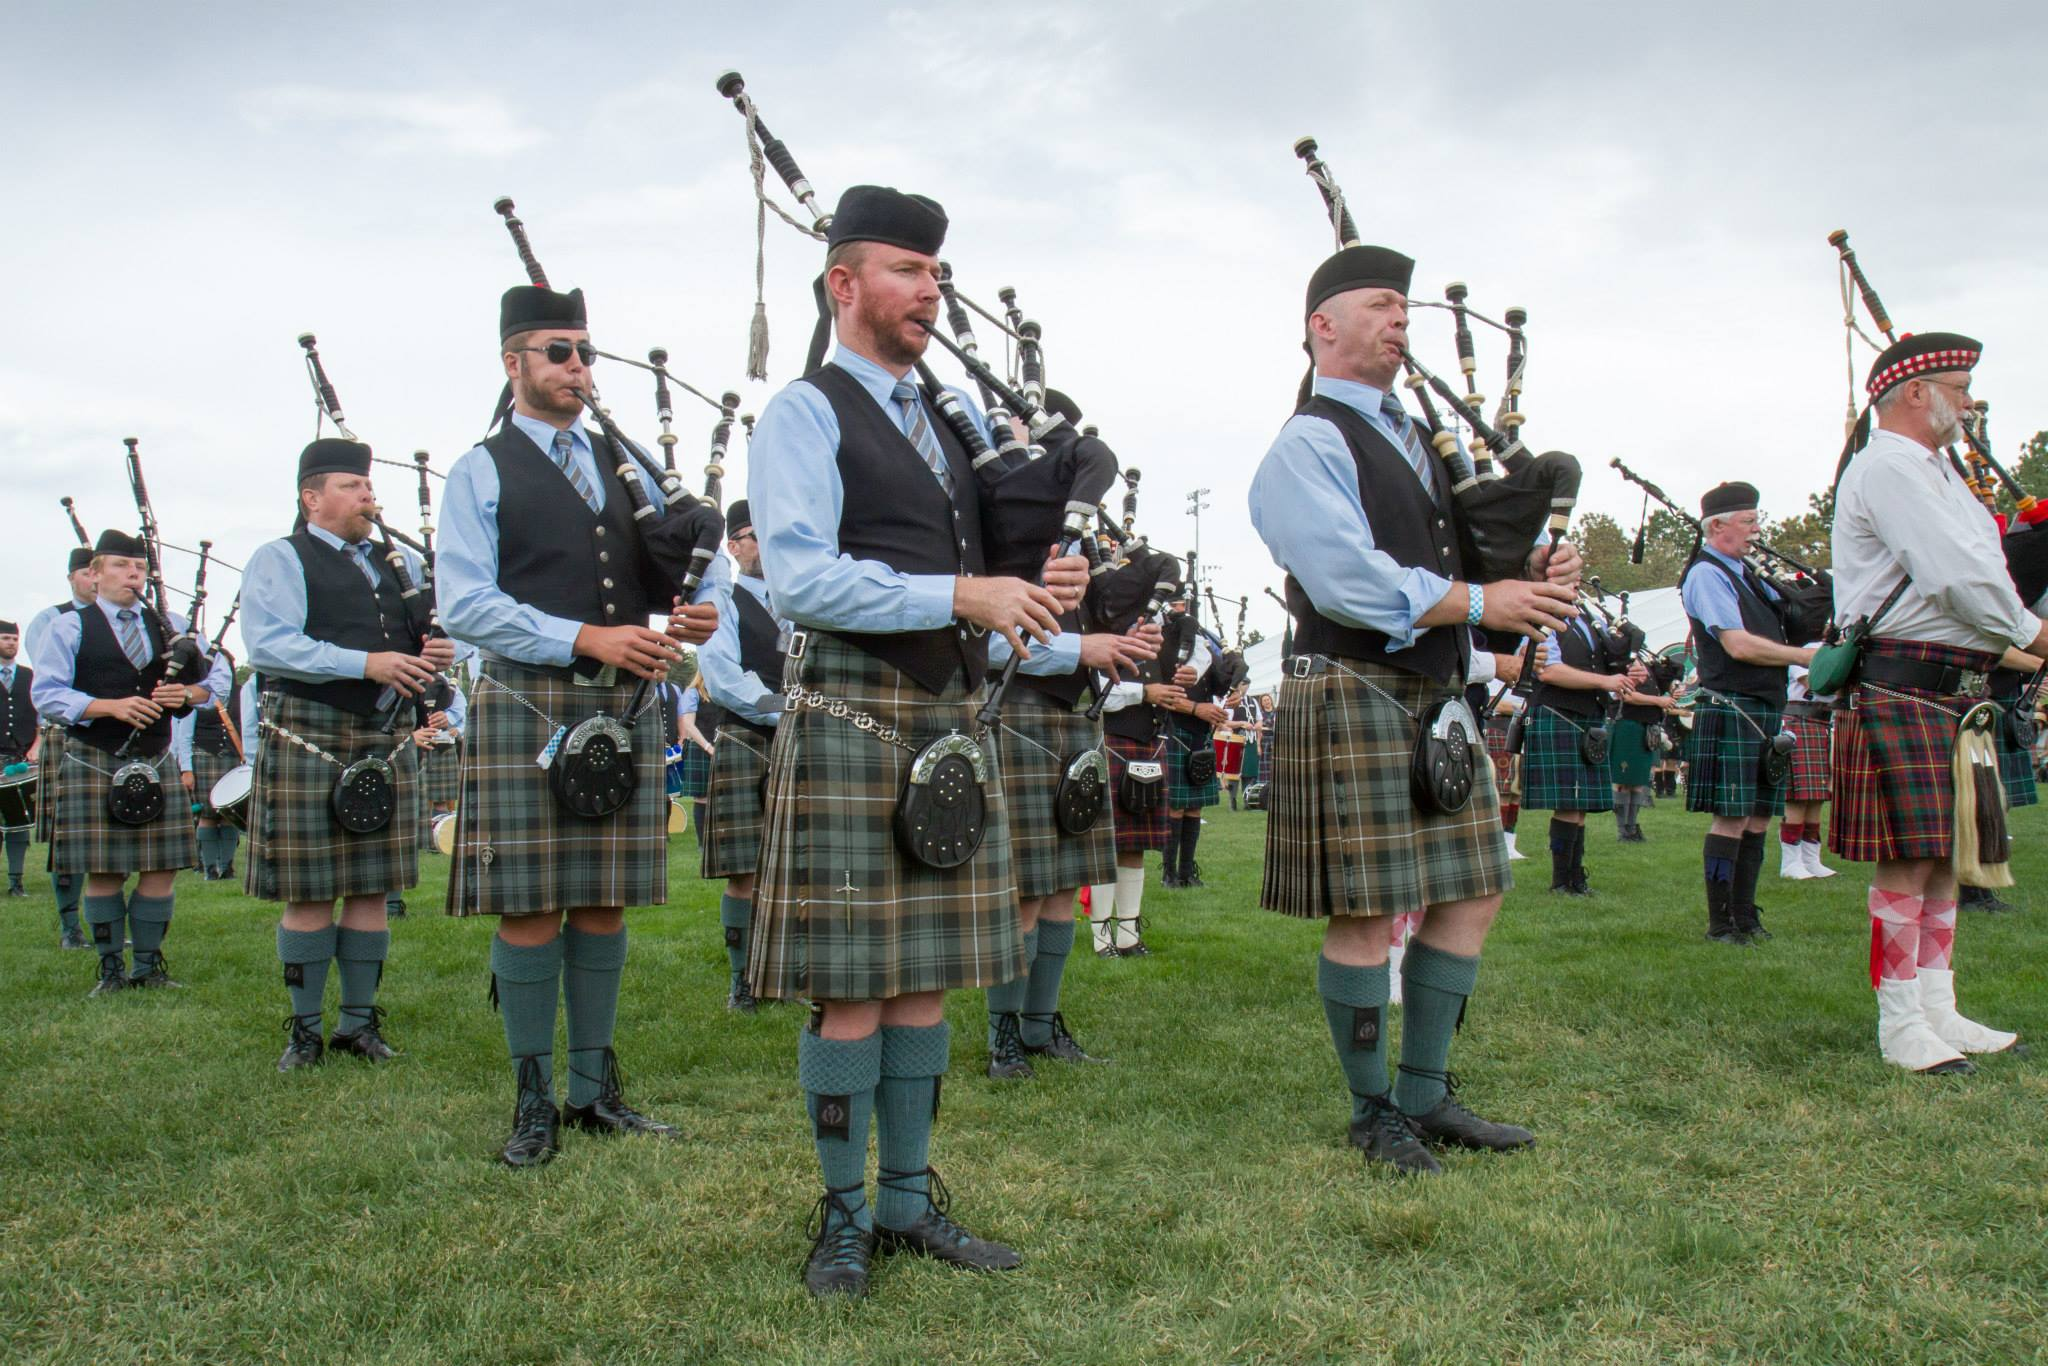 5)	Check Out the Pipes & Drums. The ancient, stirring and glorious sounds of highland bagpipes and drums will fill the air throughout the weekend. It's a sight and sound not to be missed. The pipe and drum competition at the Pikes Peak Celtic Festival is a Western United States Pipe Band Association sanctioned event, and the full schedule of competitions can be found here on our site.